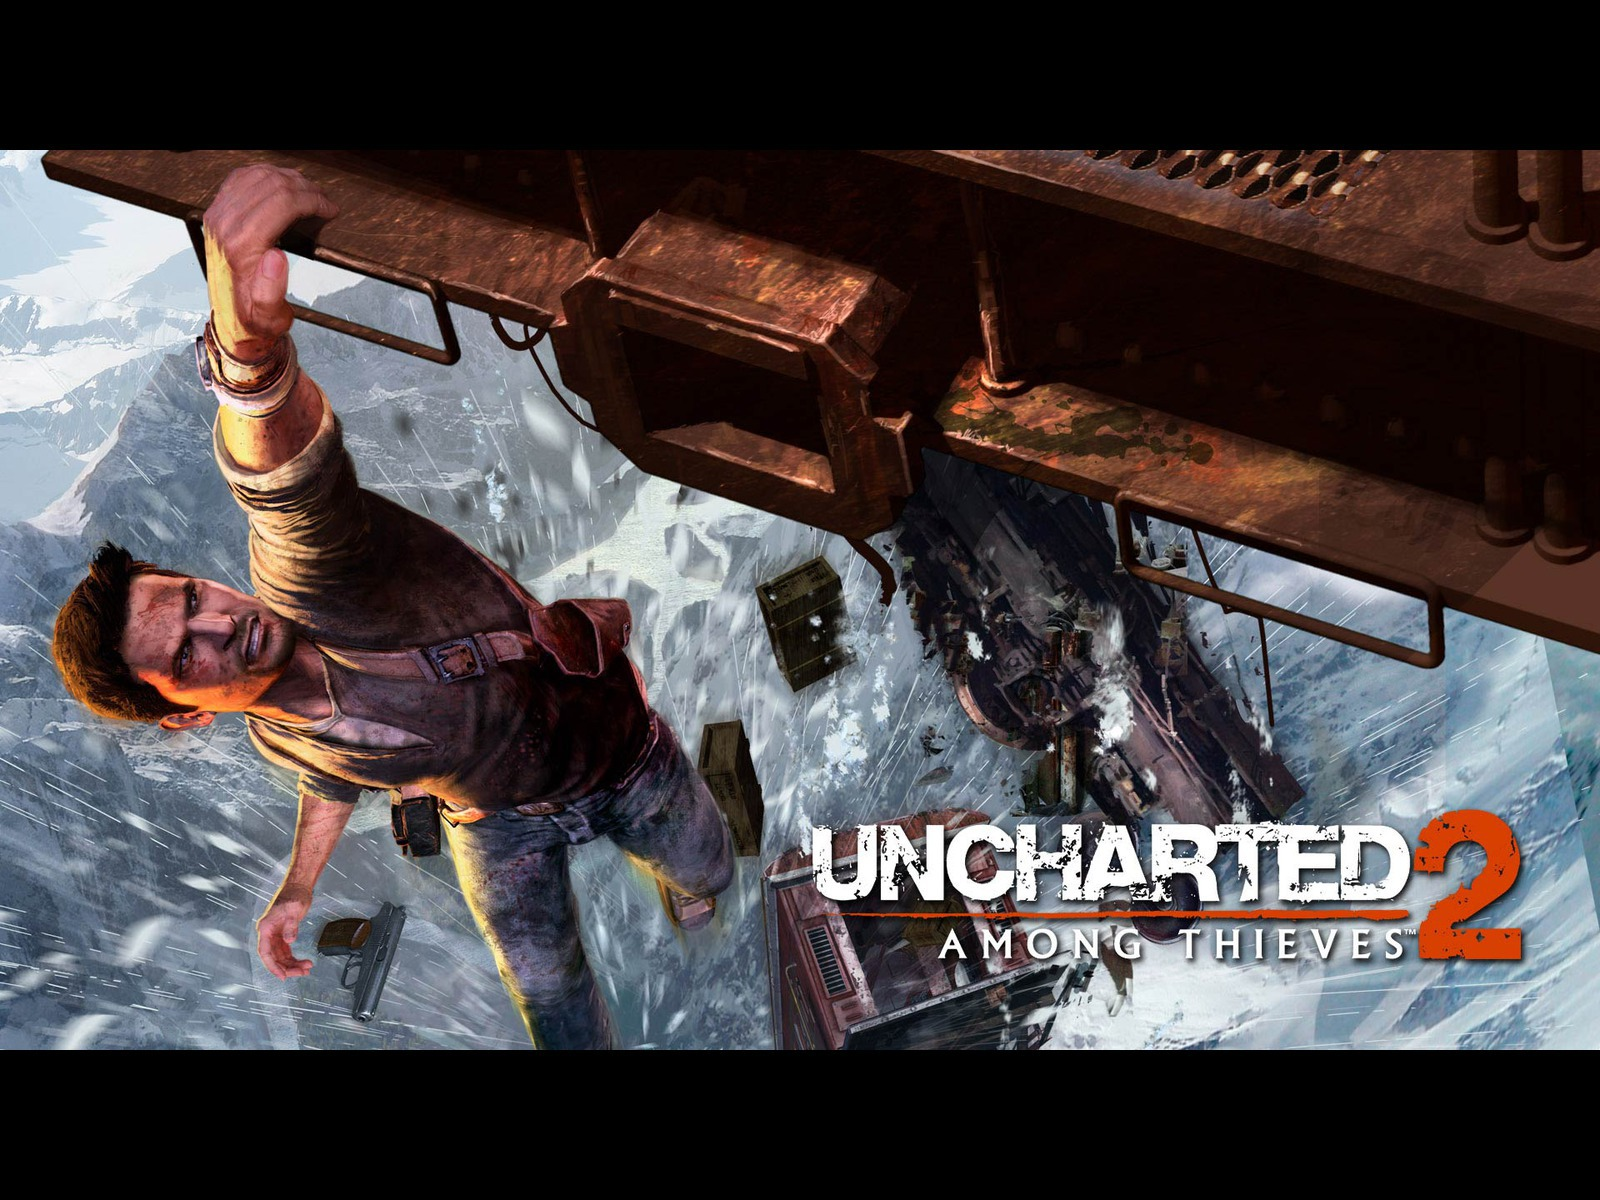 Uncharted 2  Uncharted 2 Among Thieves Wallpaper Gallery   Best 1600x1200